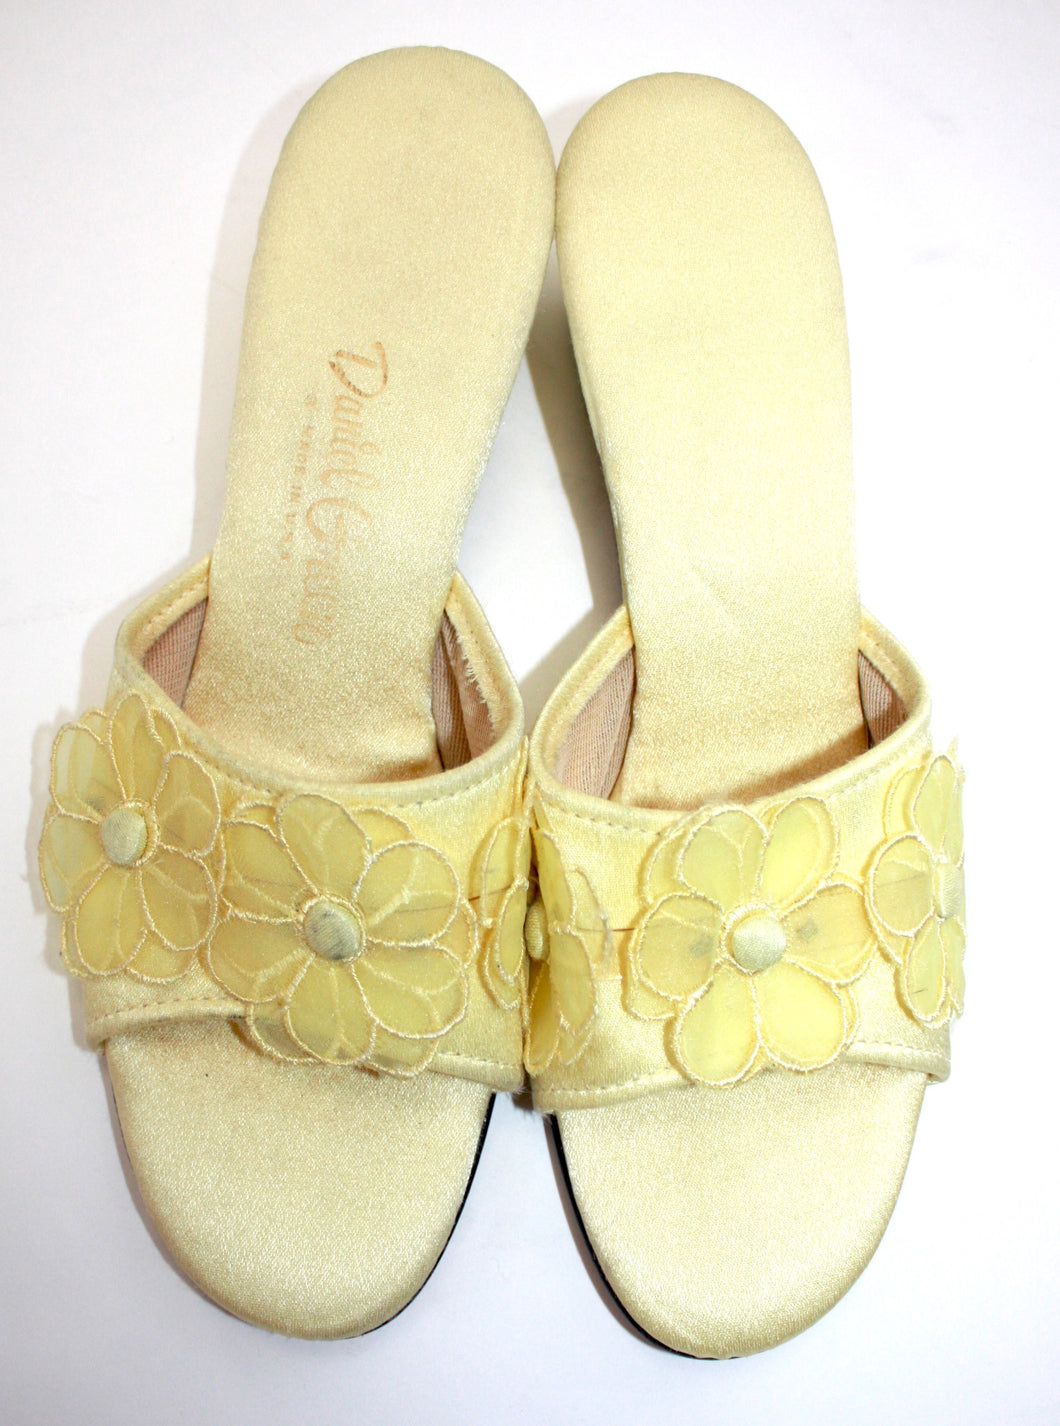 Yellow satin chiffon daisy lounge slip on